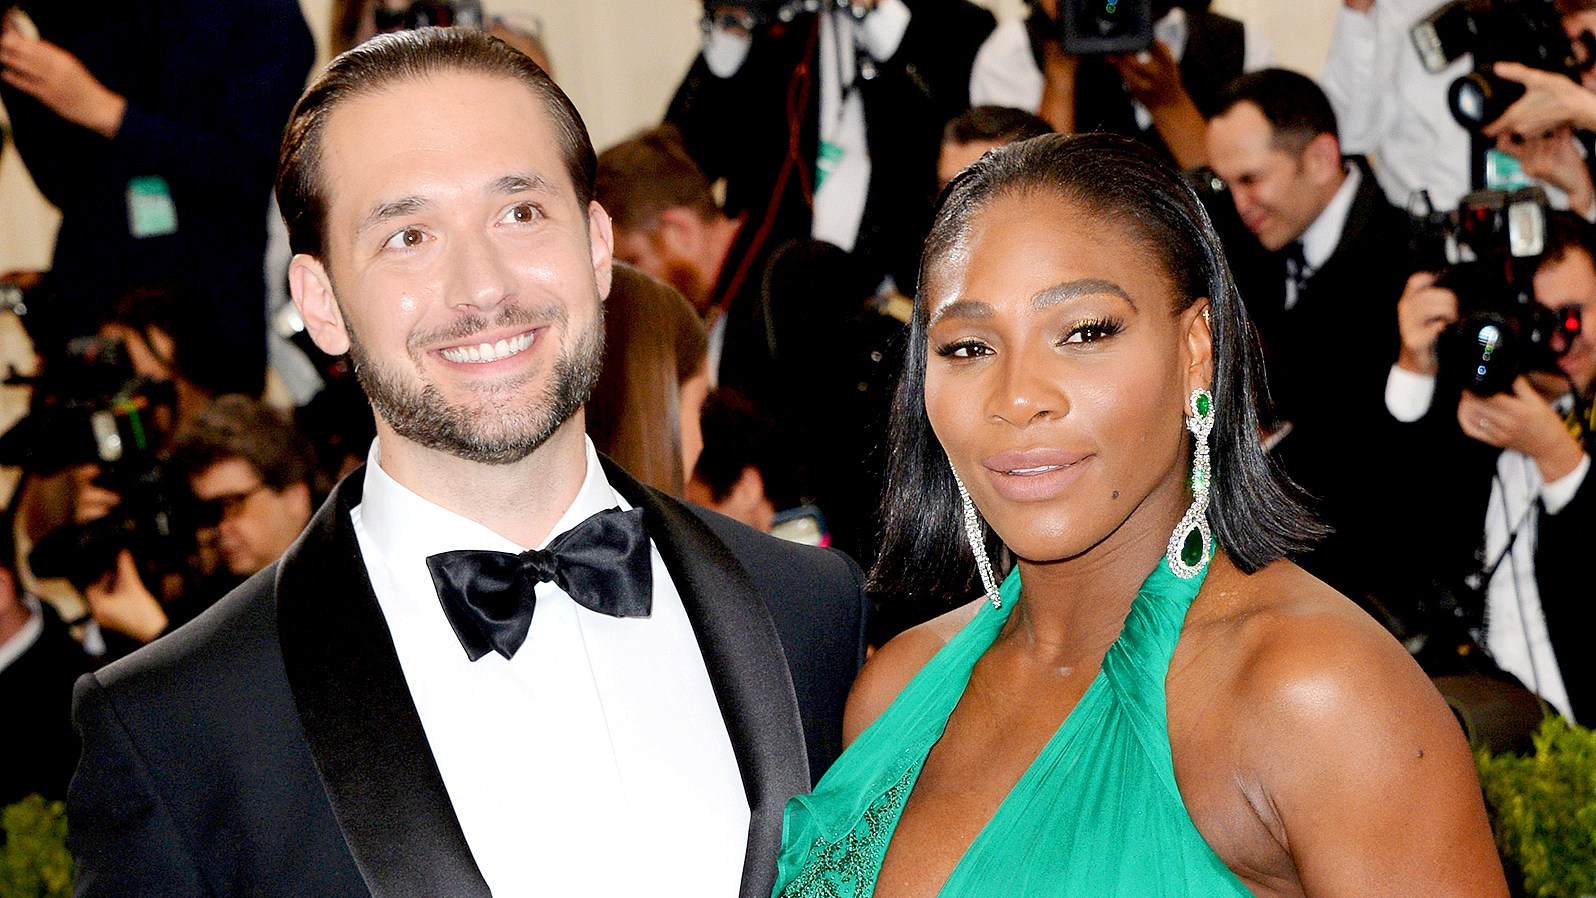 Serena Williams and Alexis Ohanian attend the 2017 Comme des Garcons-Art of the In-Between Costume Institute Gala at the Metropolitan Museum Of Art on May 1, 2017.